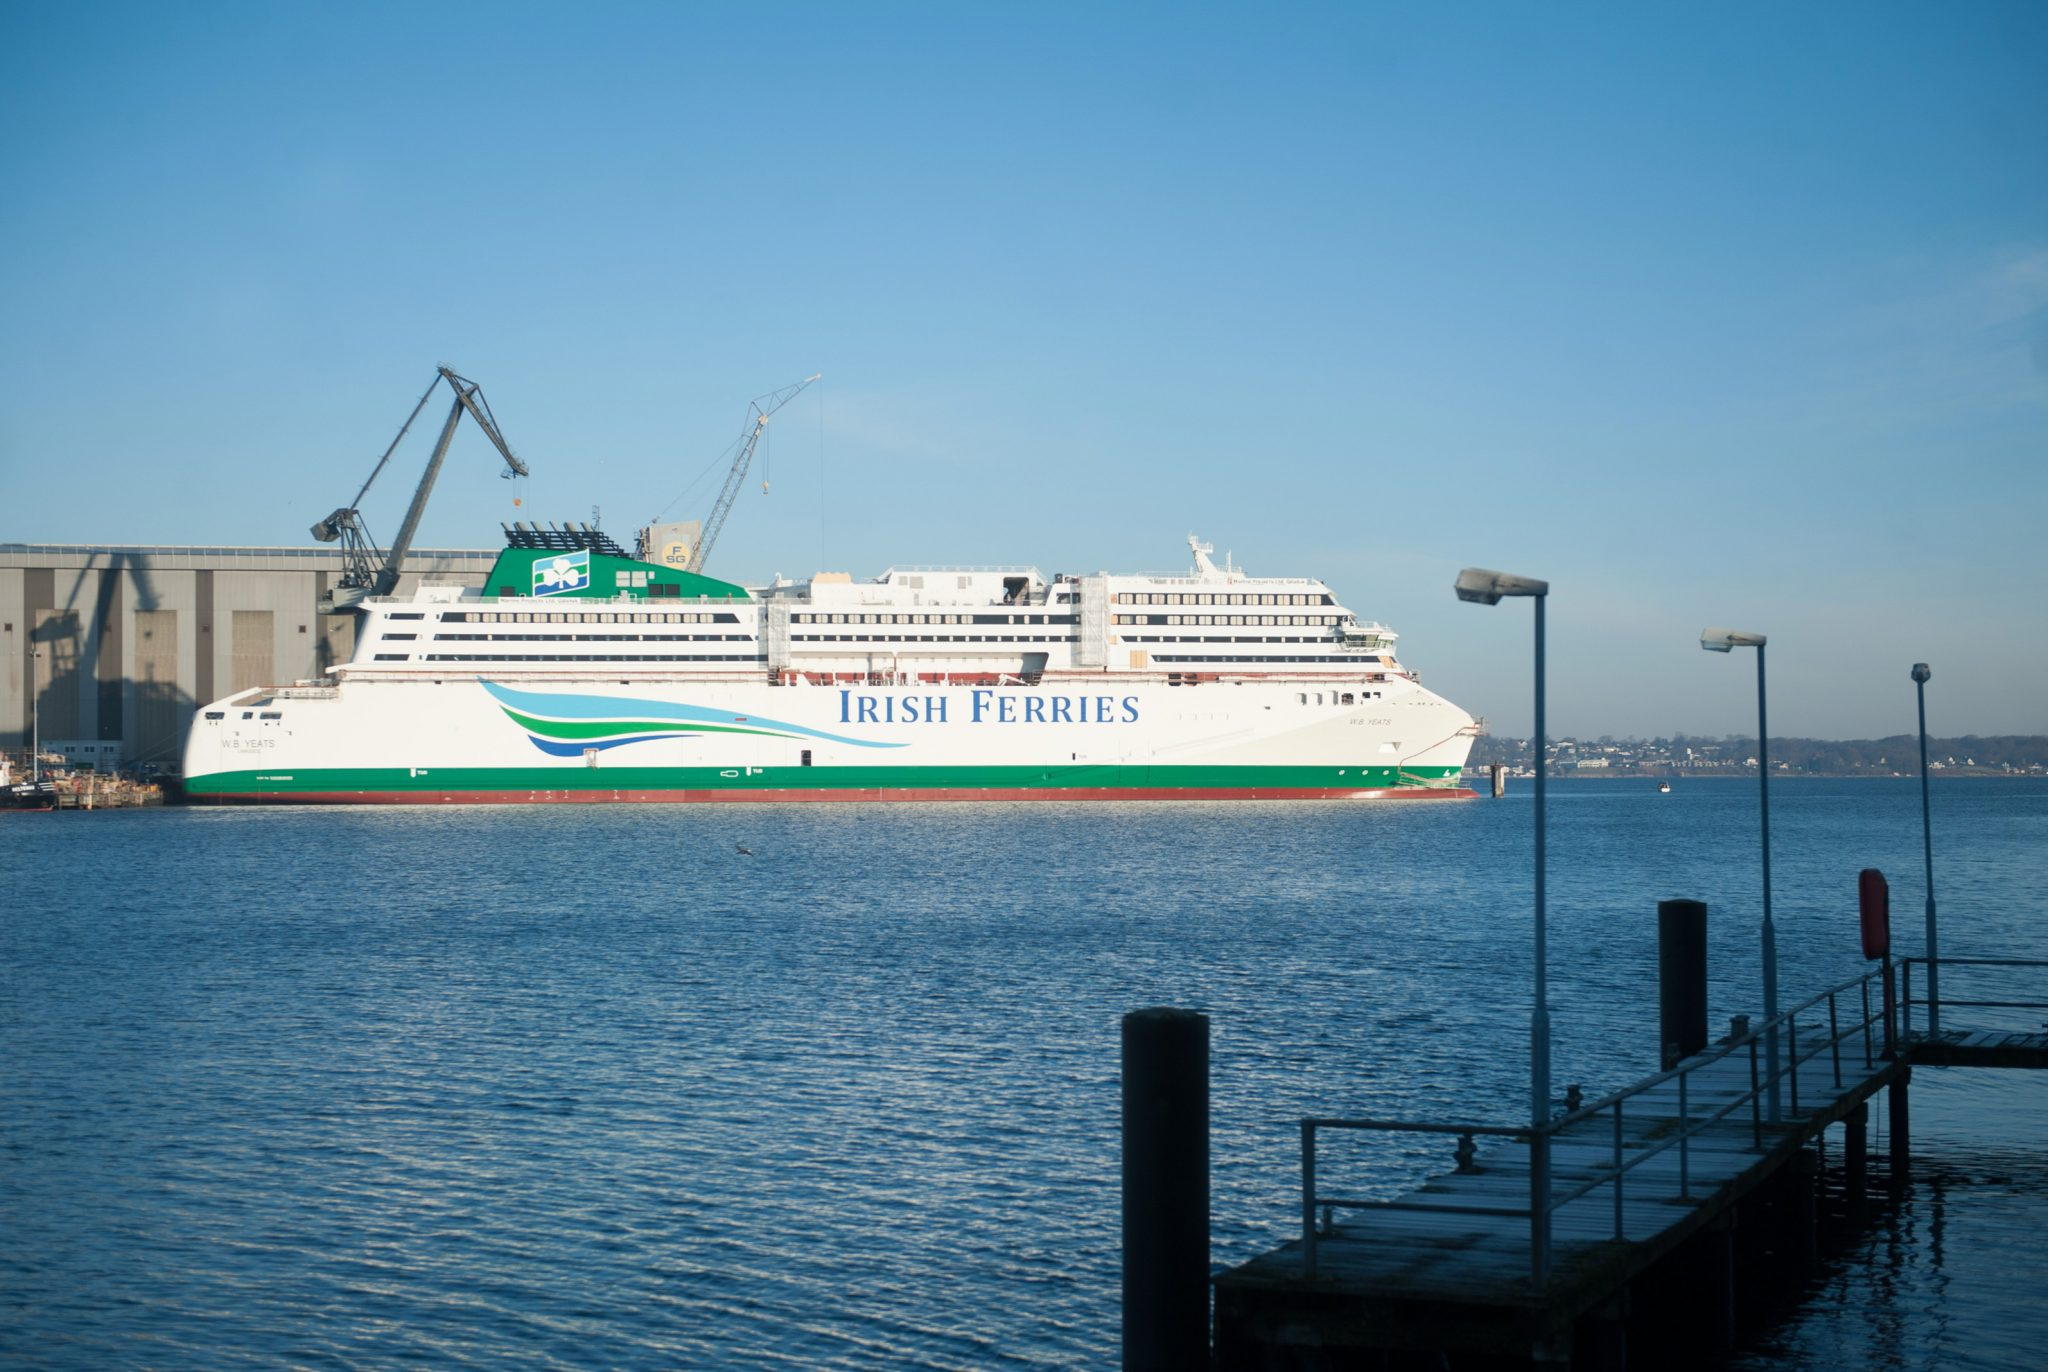 fsg_Ferries -3623